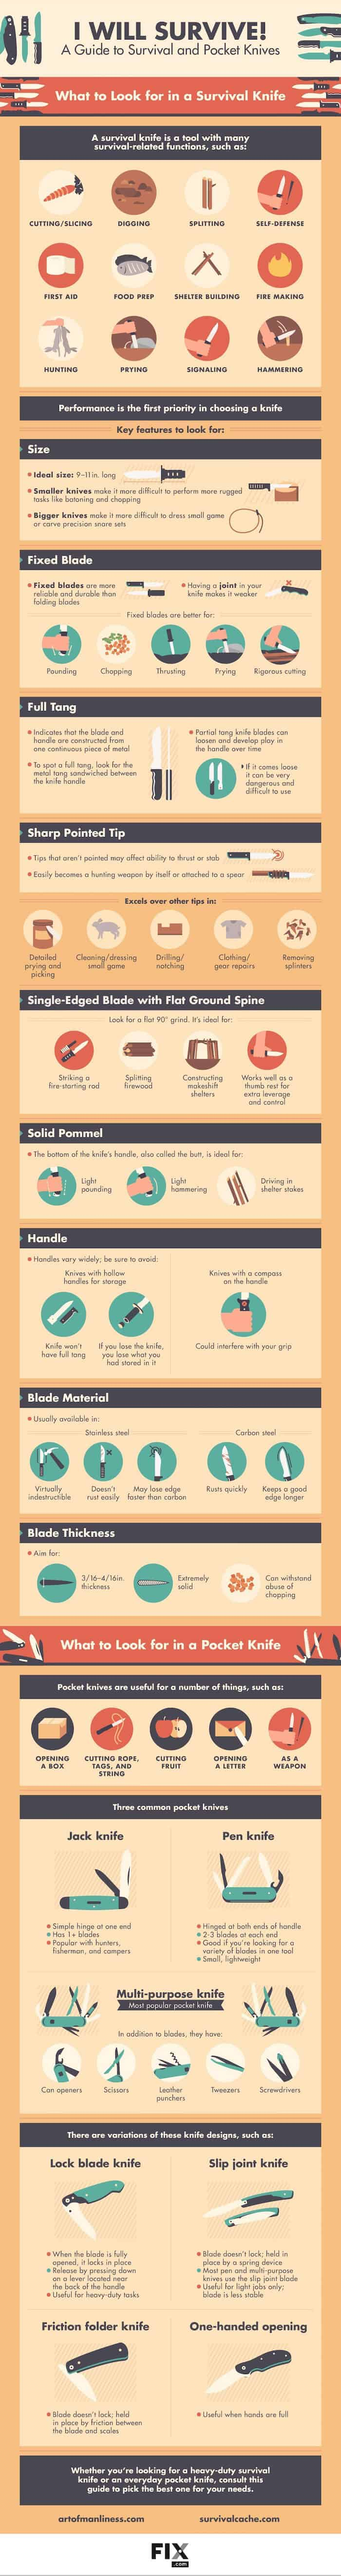 pocket-and-survival-knives infographic